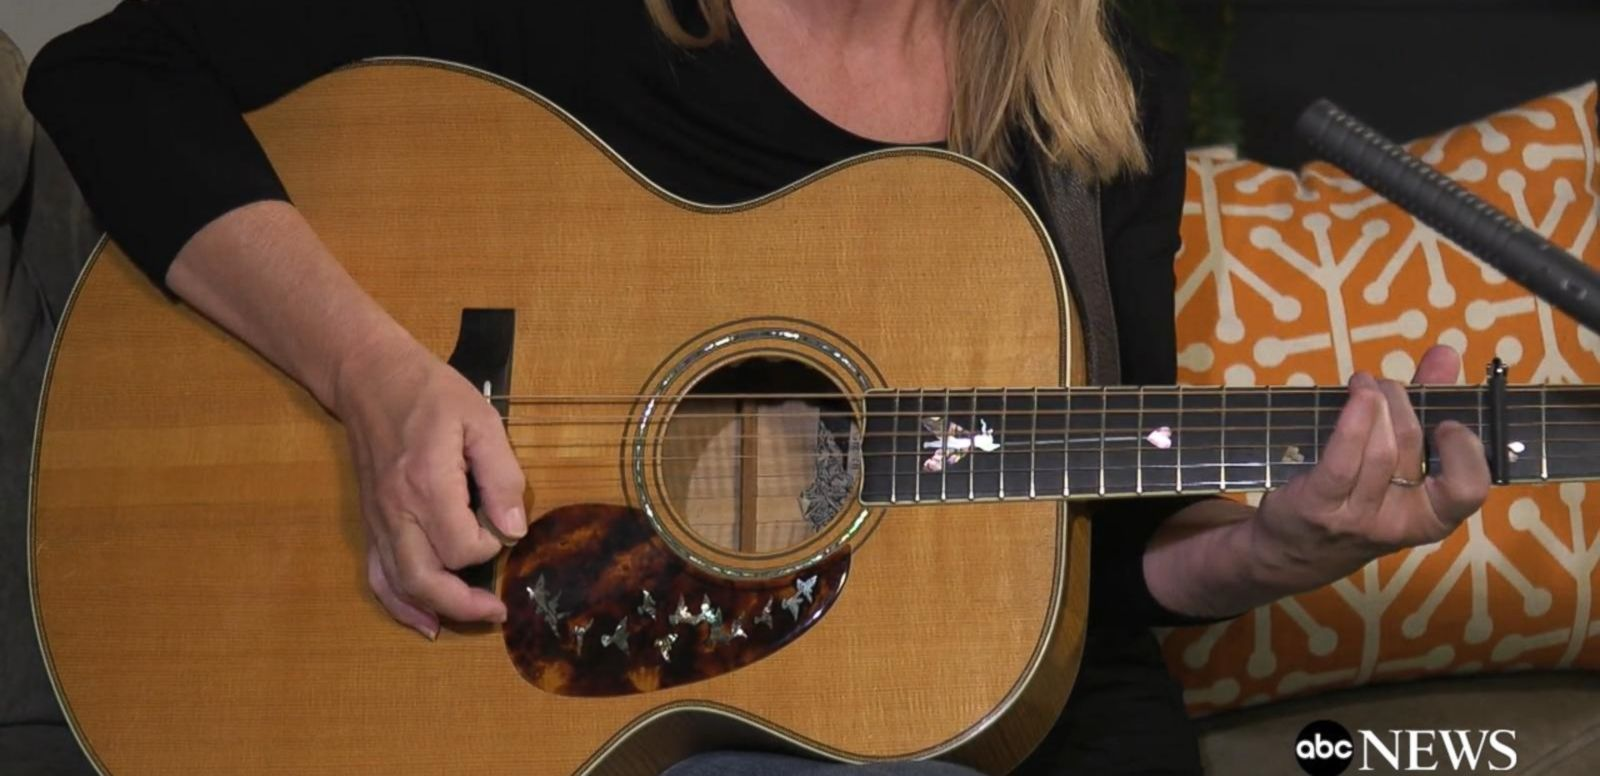 VIDEO: Mary Chapin Carpenter Performs 'The Blue Distance'